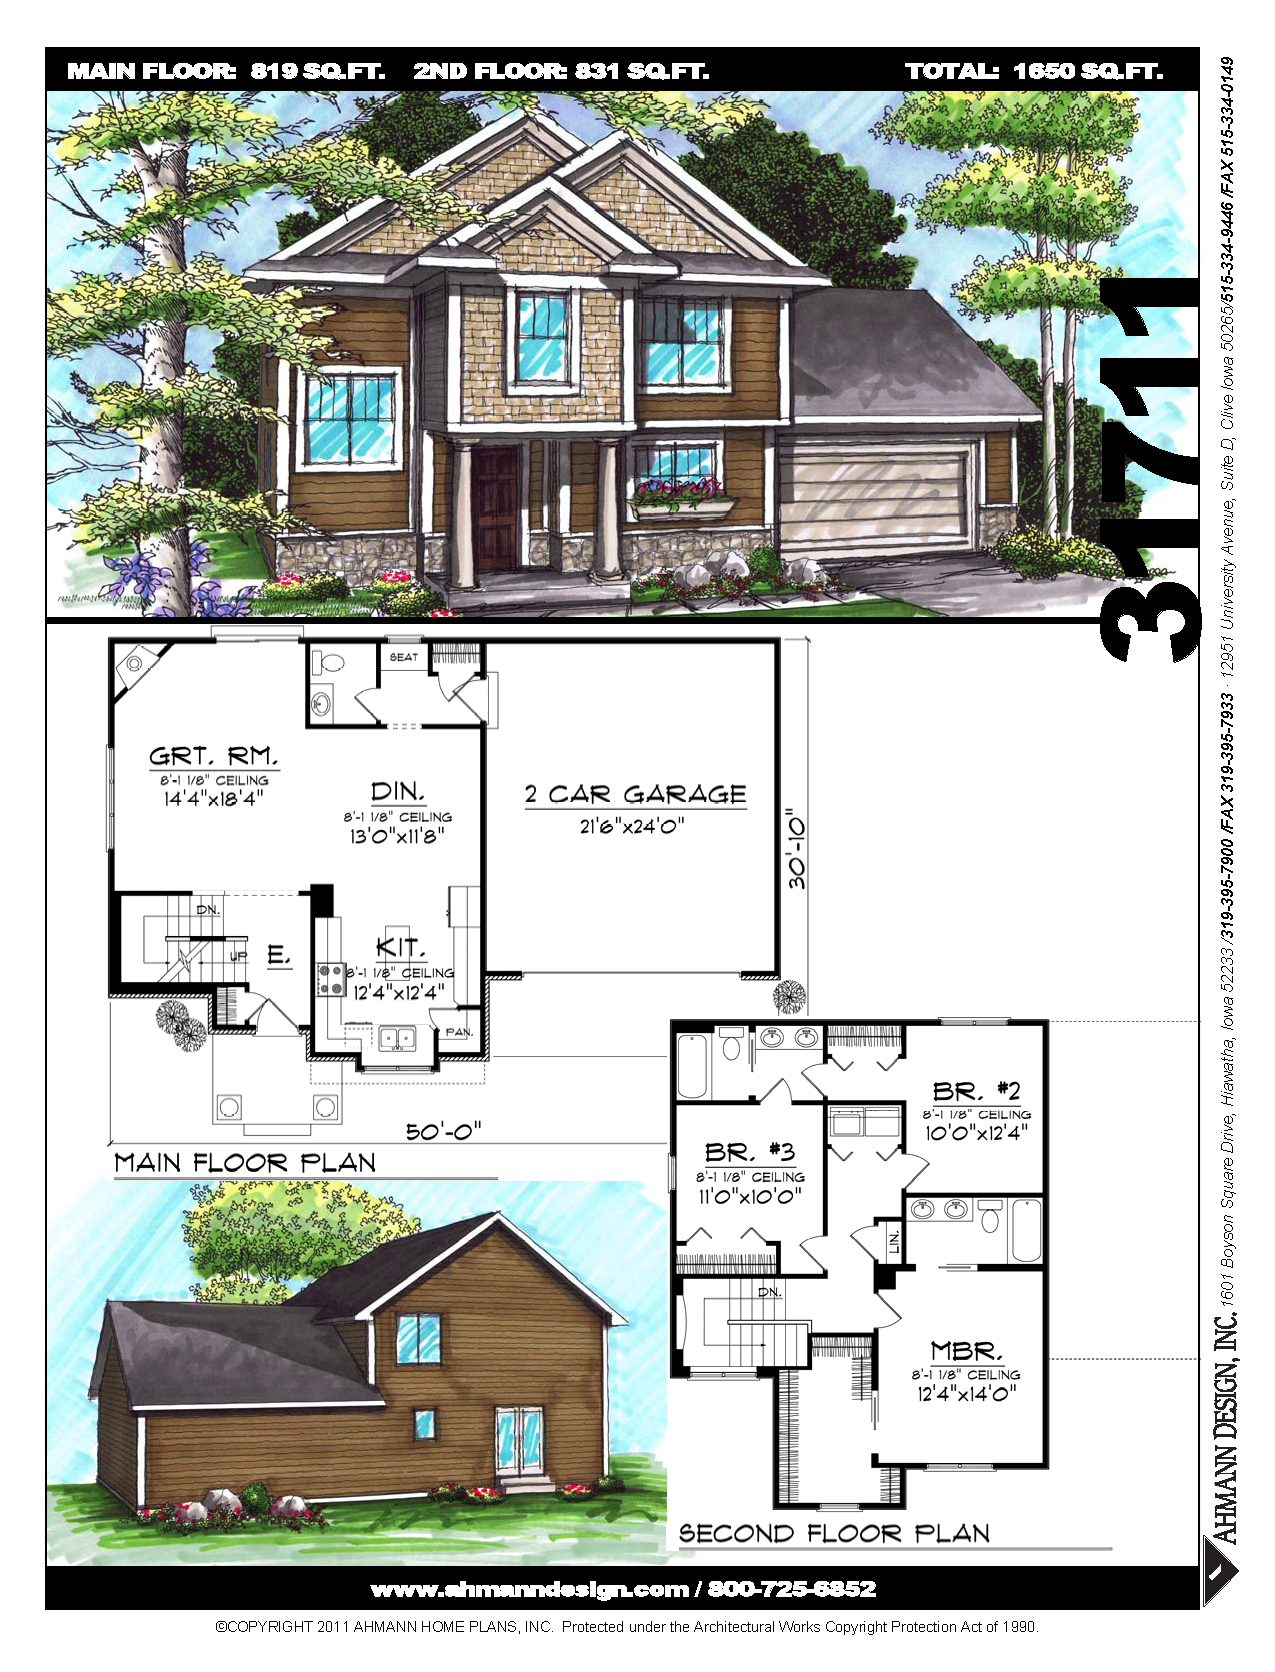 Traditional in style but craftsman in detail this two story home will blend easily into old and new neighborhoods massive support columns on the porch